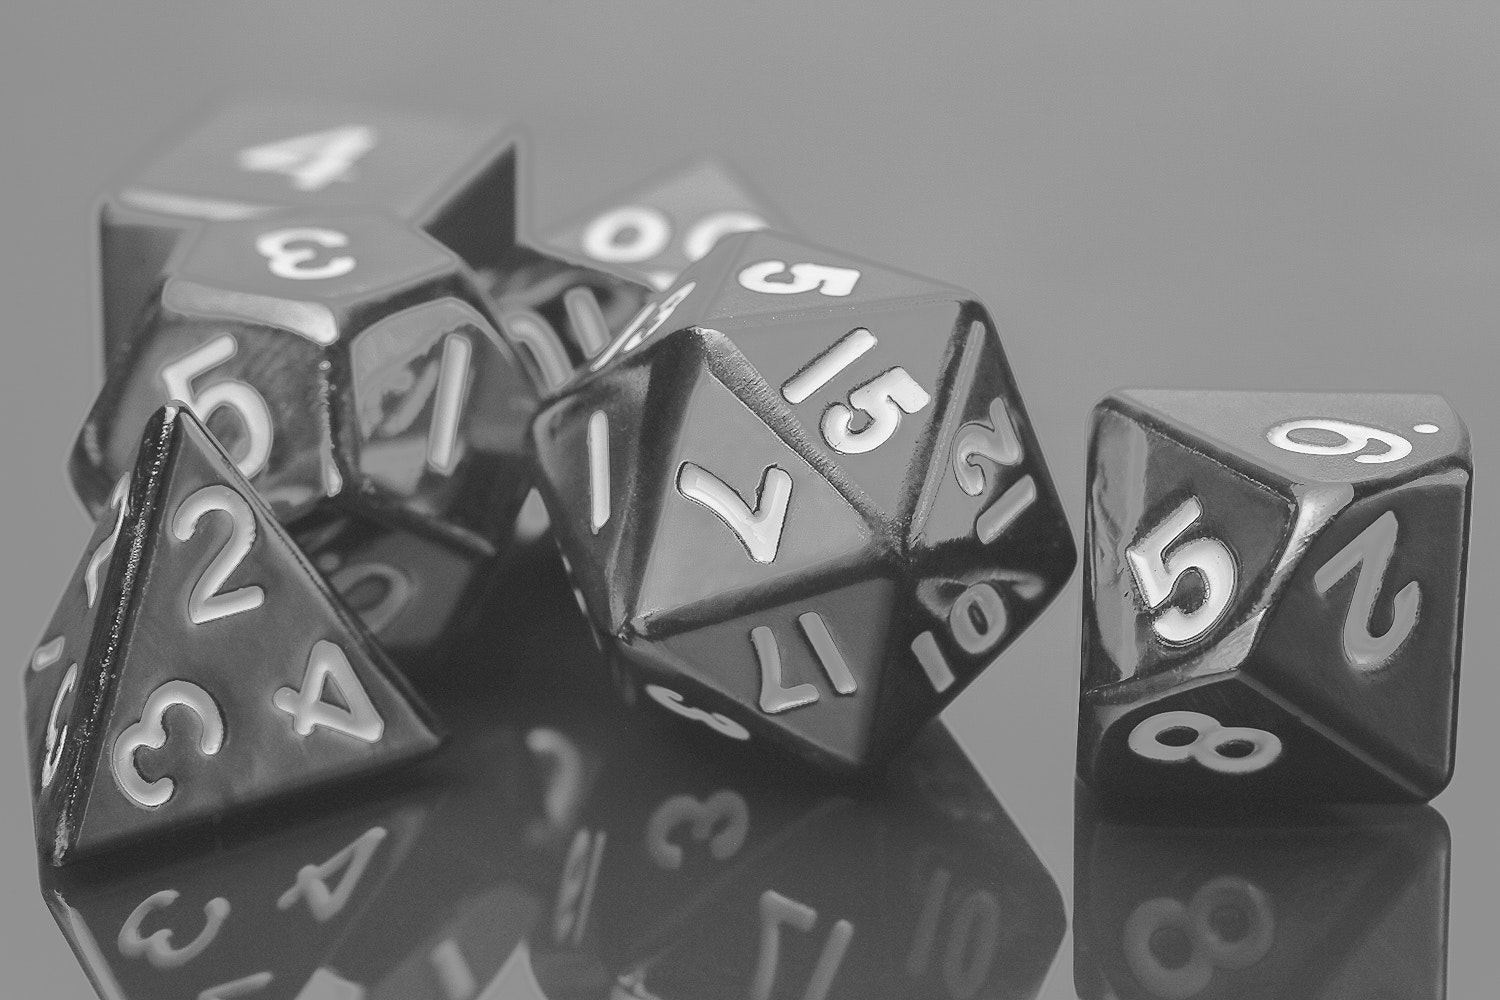 Metallic Dice Games 16mm Sterling Gray Dice Set